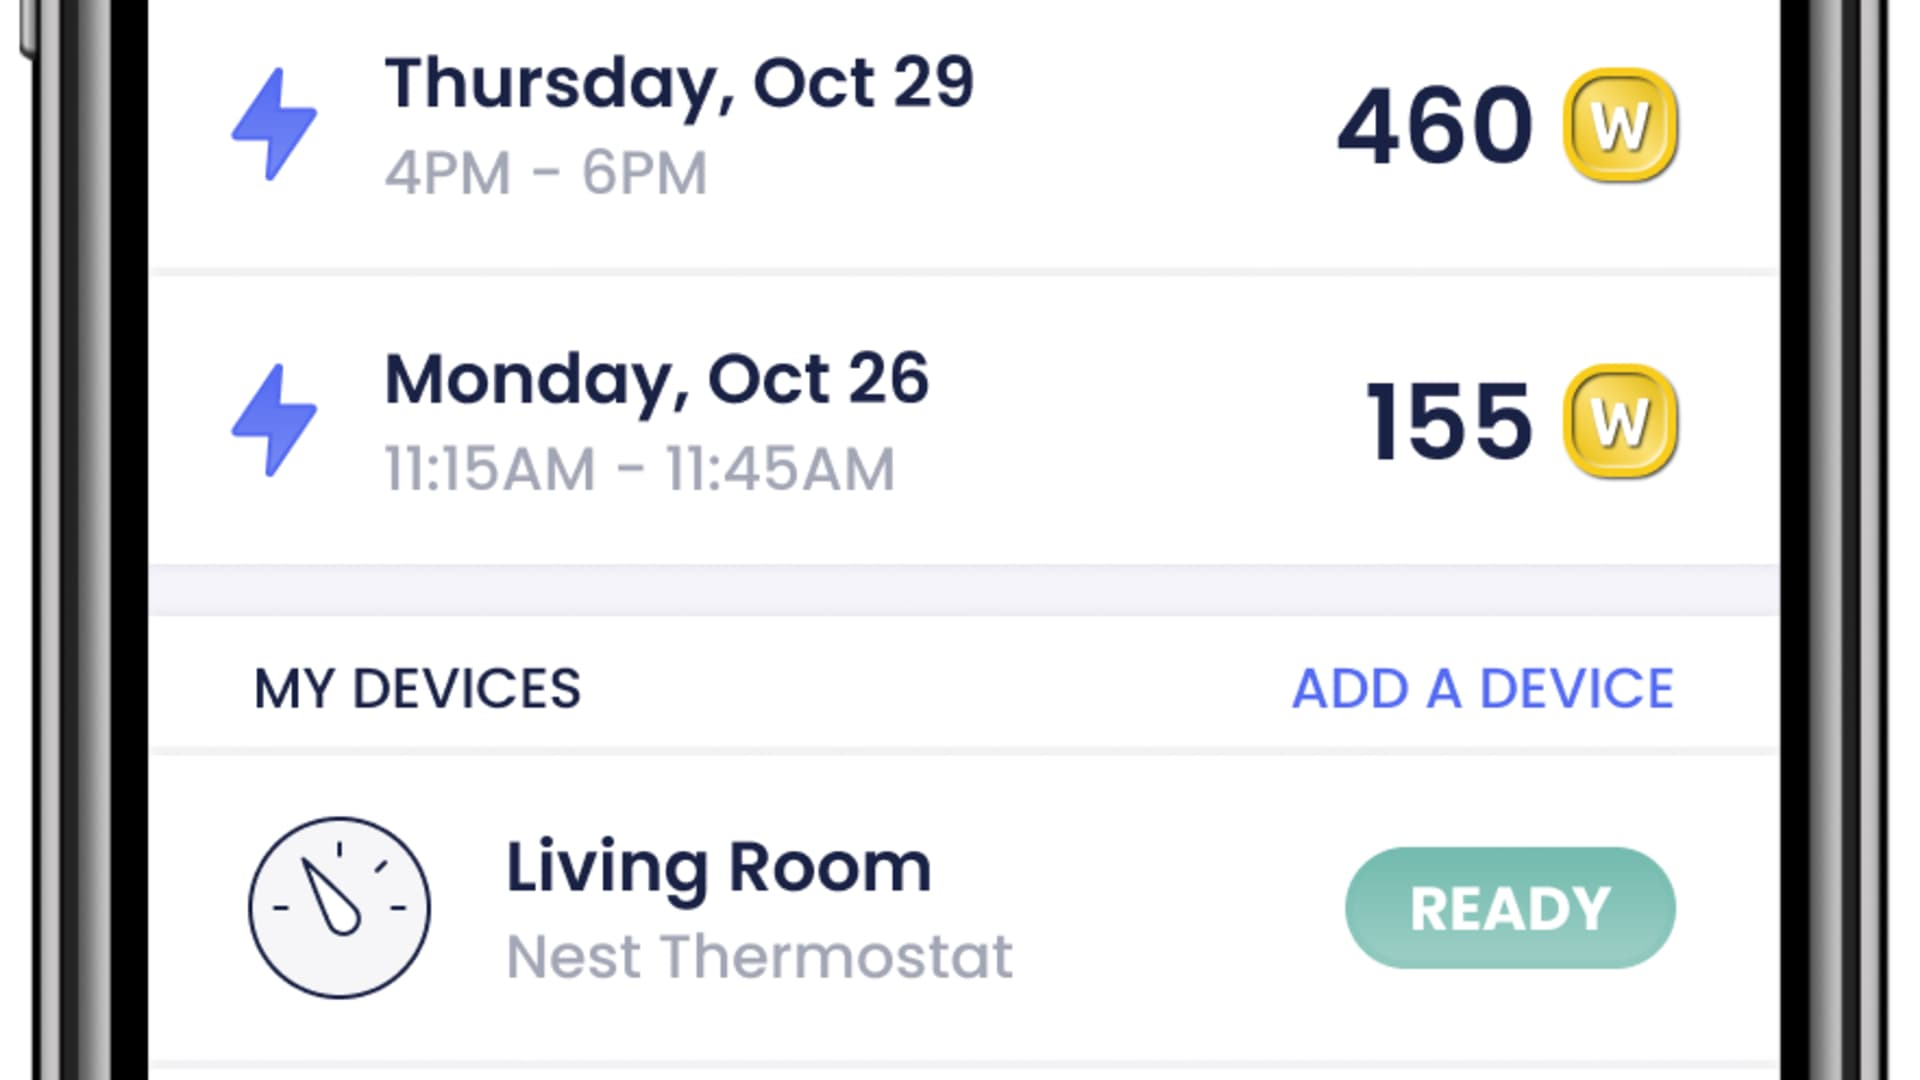 OhmConnect works with dozens of vendors of smart home technology, including the Google Nest, a partnership that pre-dates the recent investment.